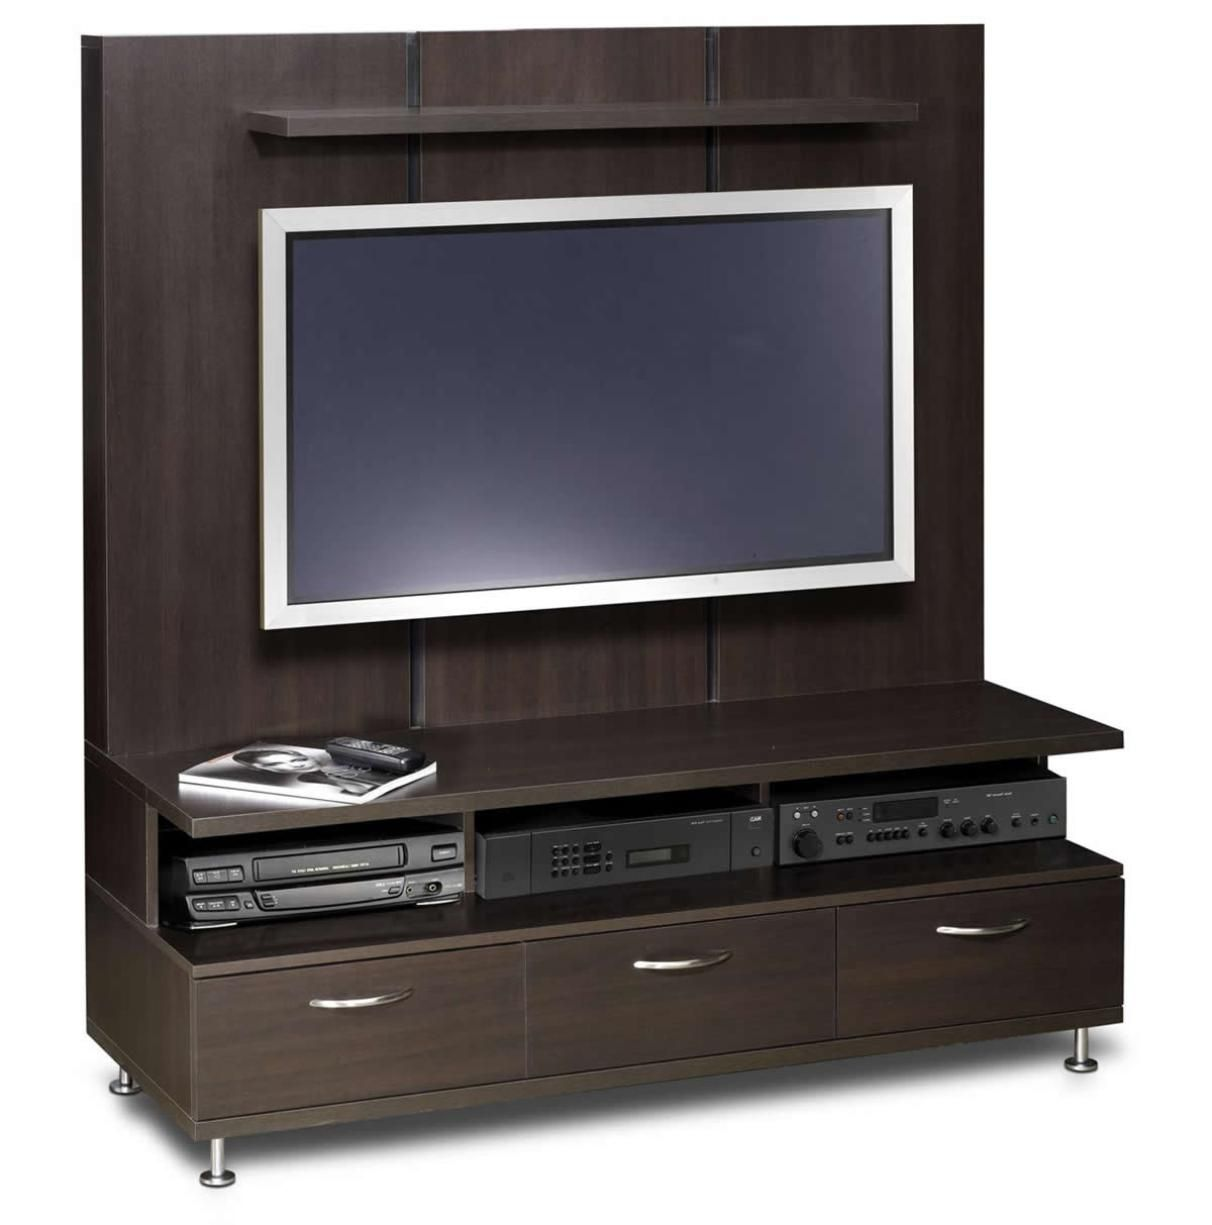 Woodworking plans plasma tv stand plans free download for In wall tv cabinet